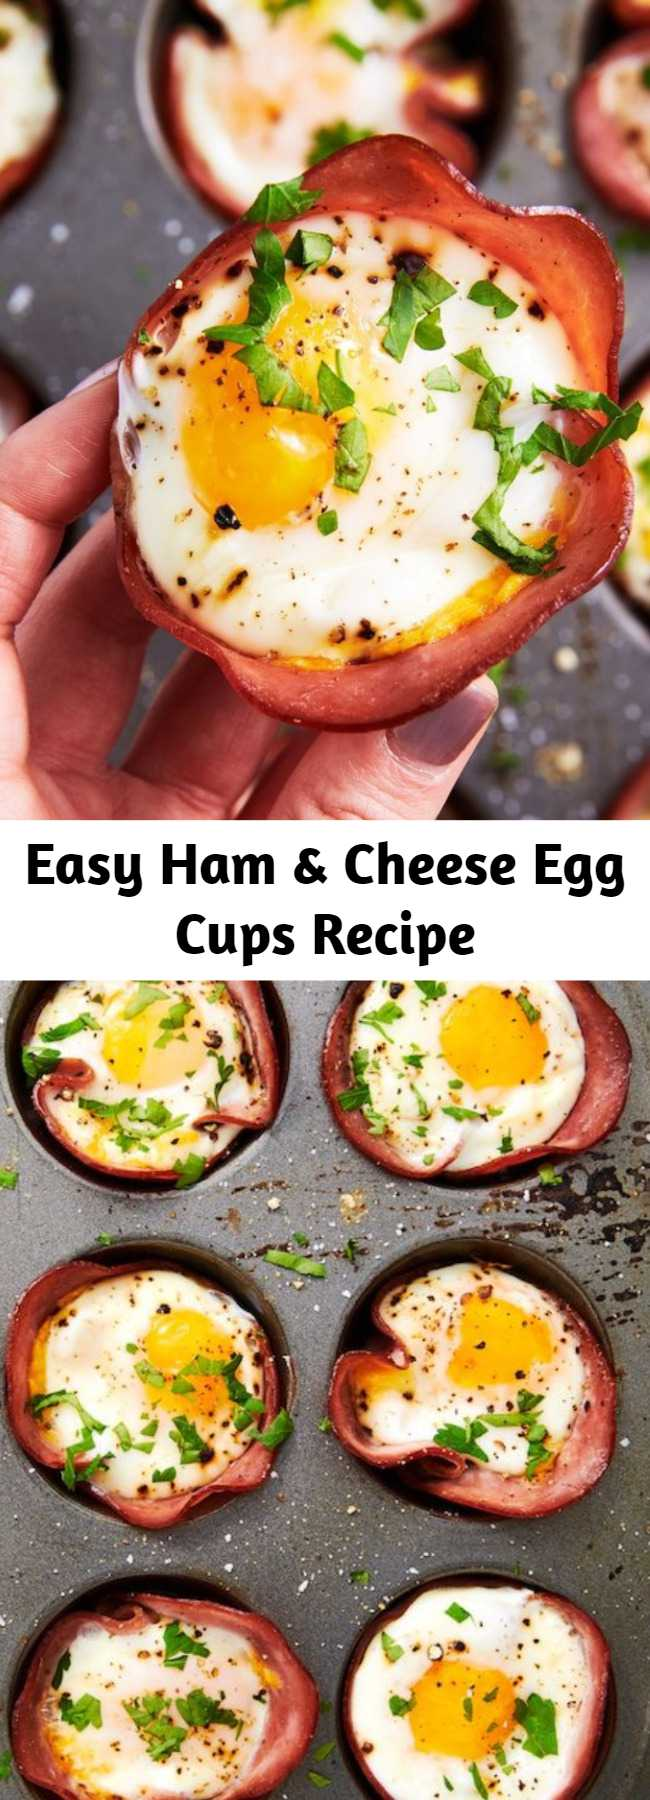 Easy Ham & Cheese Egg Cups Recipe - This low-carb breakfast comes together in no time. Seriously, you only need 20 minutes! Perfect as a light savoury snack, keto breakfast or lunch or a portable picnic recipe idea, everyone will love these little egg cups.